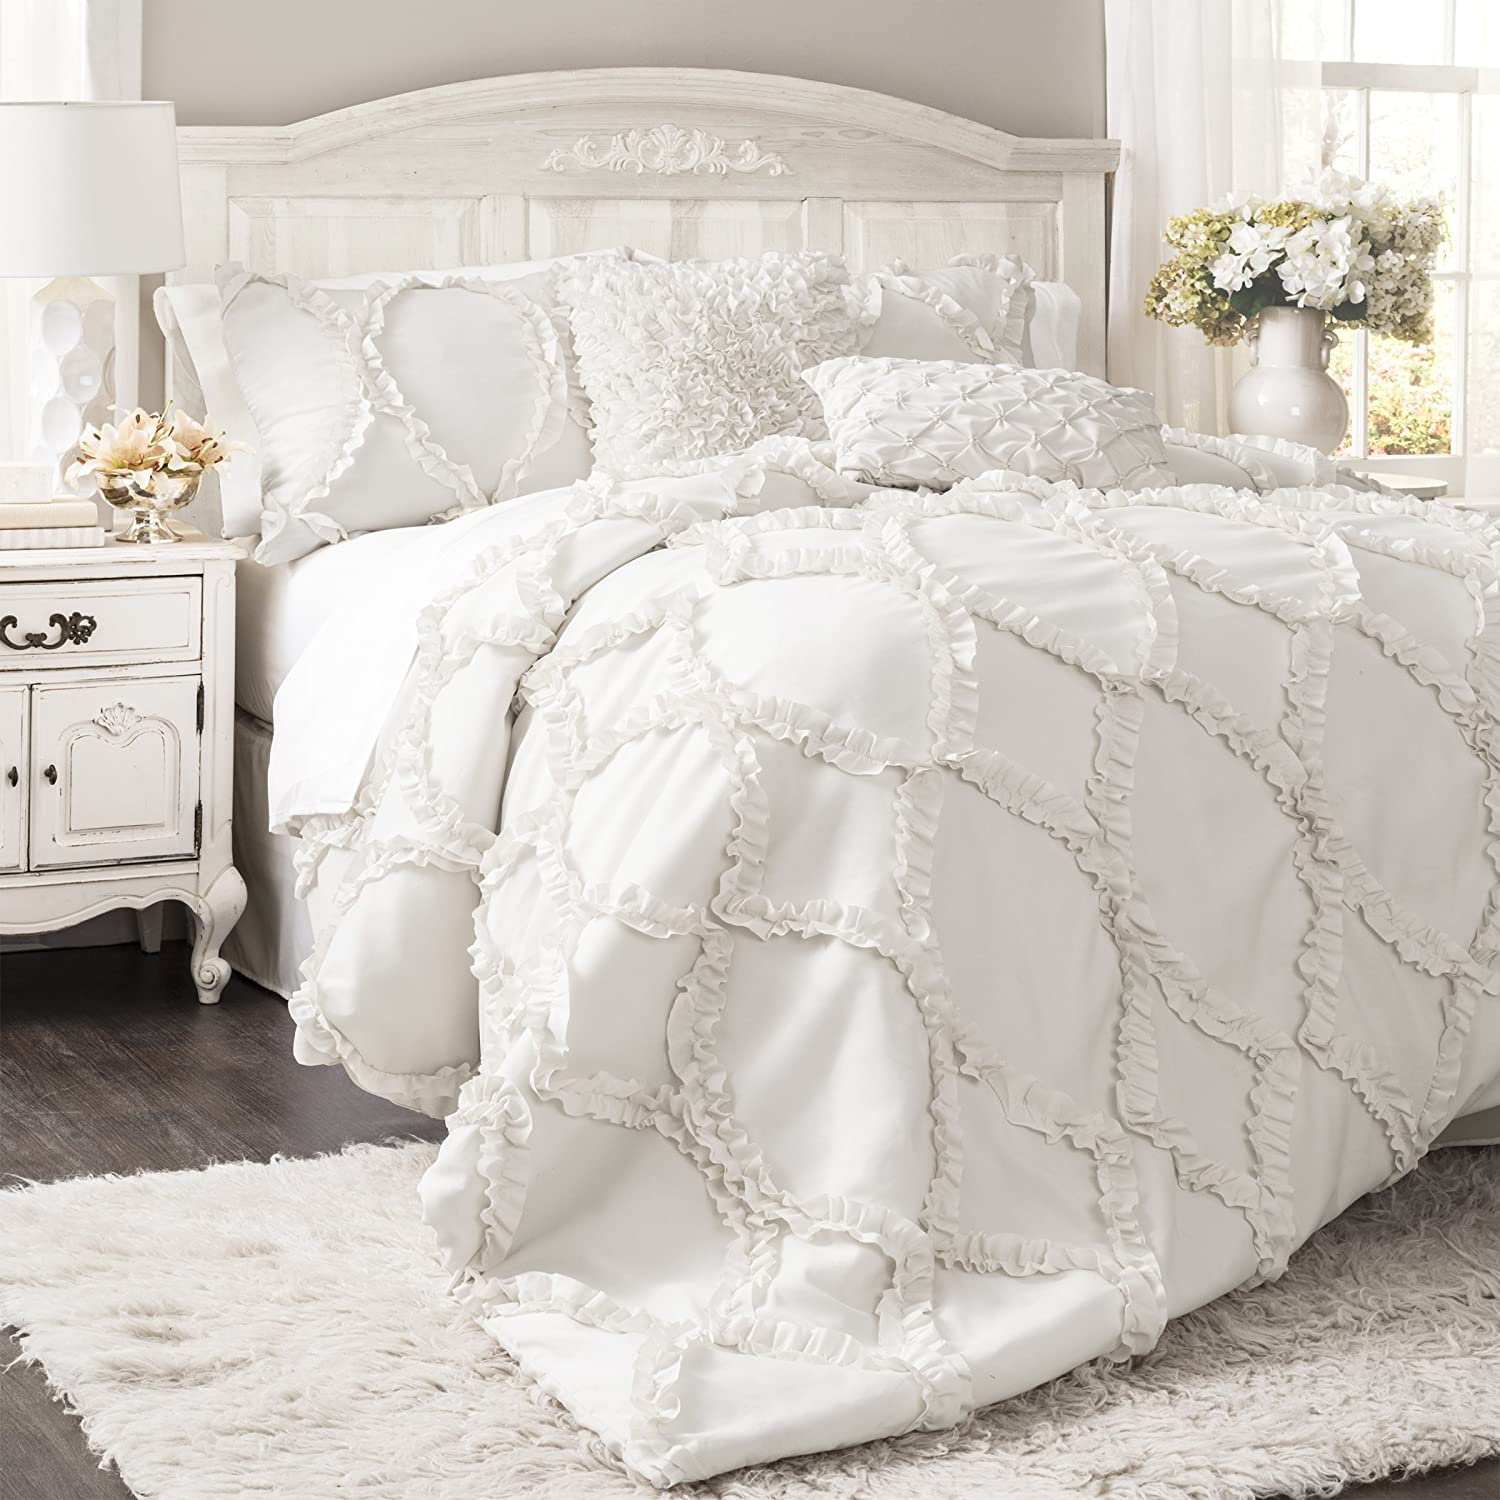 Amazoncom Lush Decor Avon Piece Comforter Set King White Home - White comforter bedroom design ideas